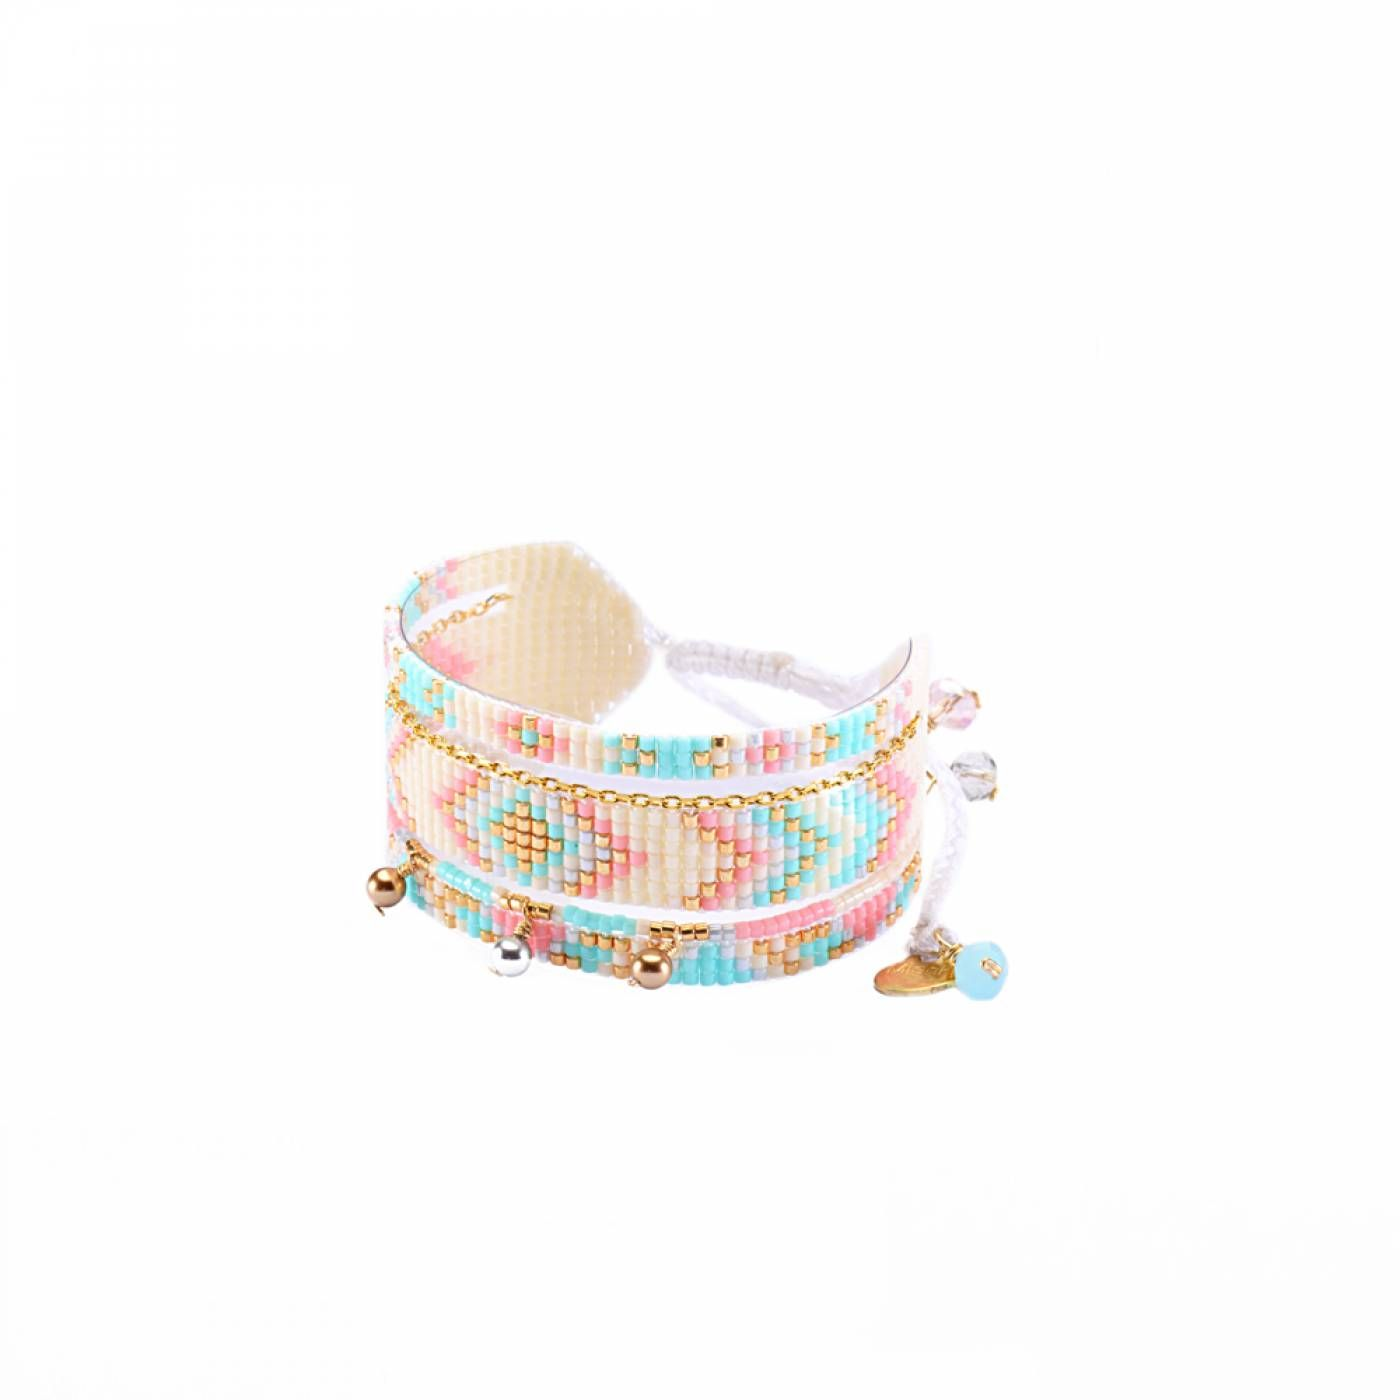 Woman Pearl Pink & TurquoiseMedly - mishky Bracelet